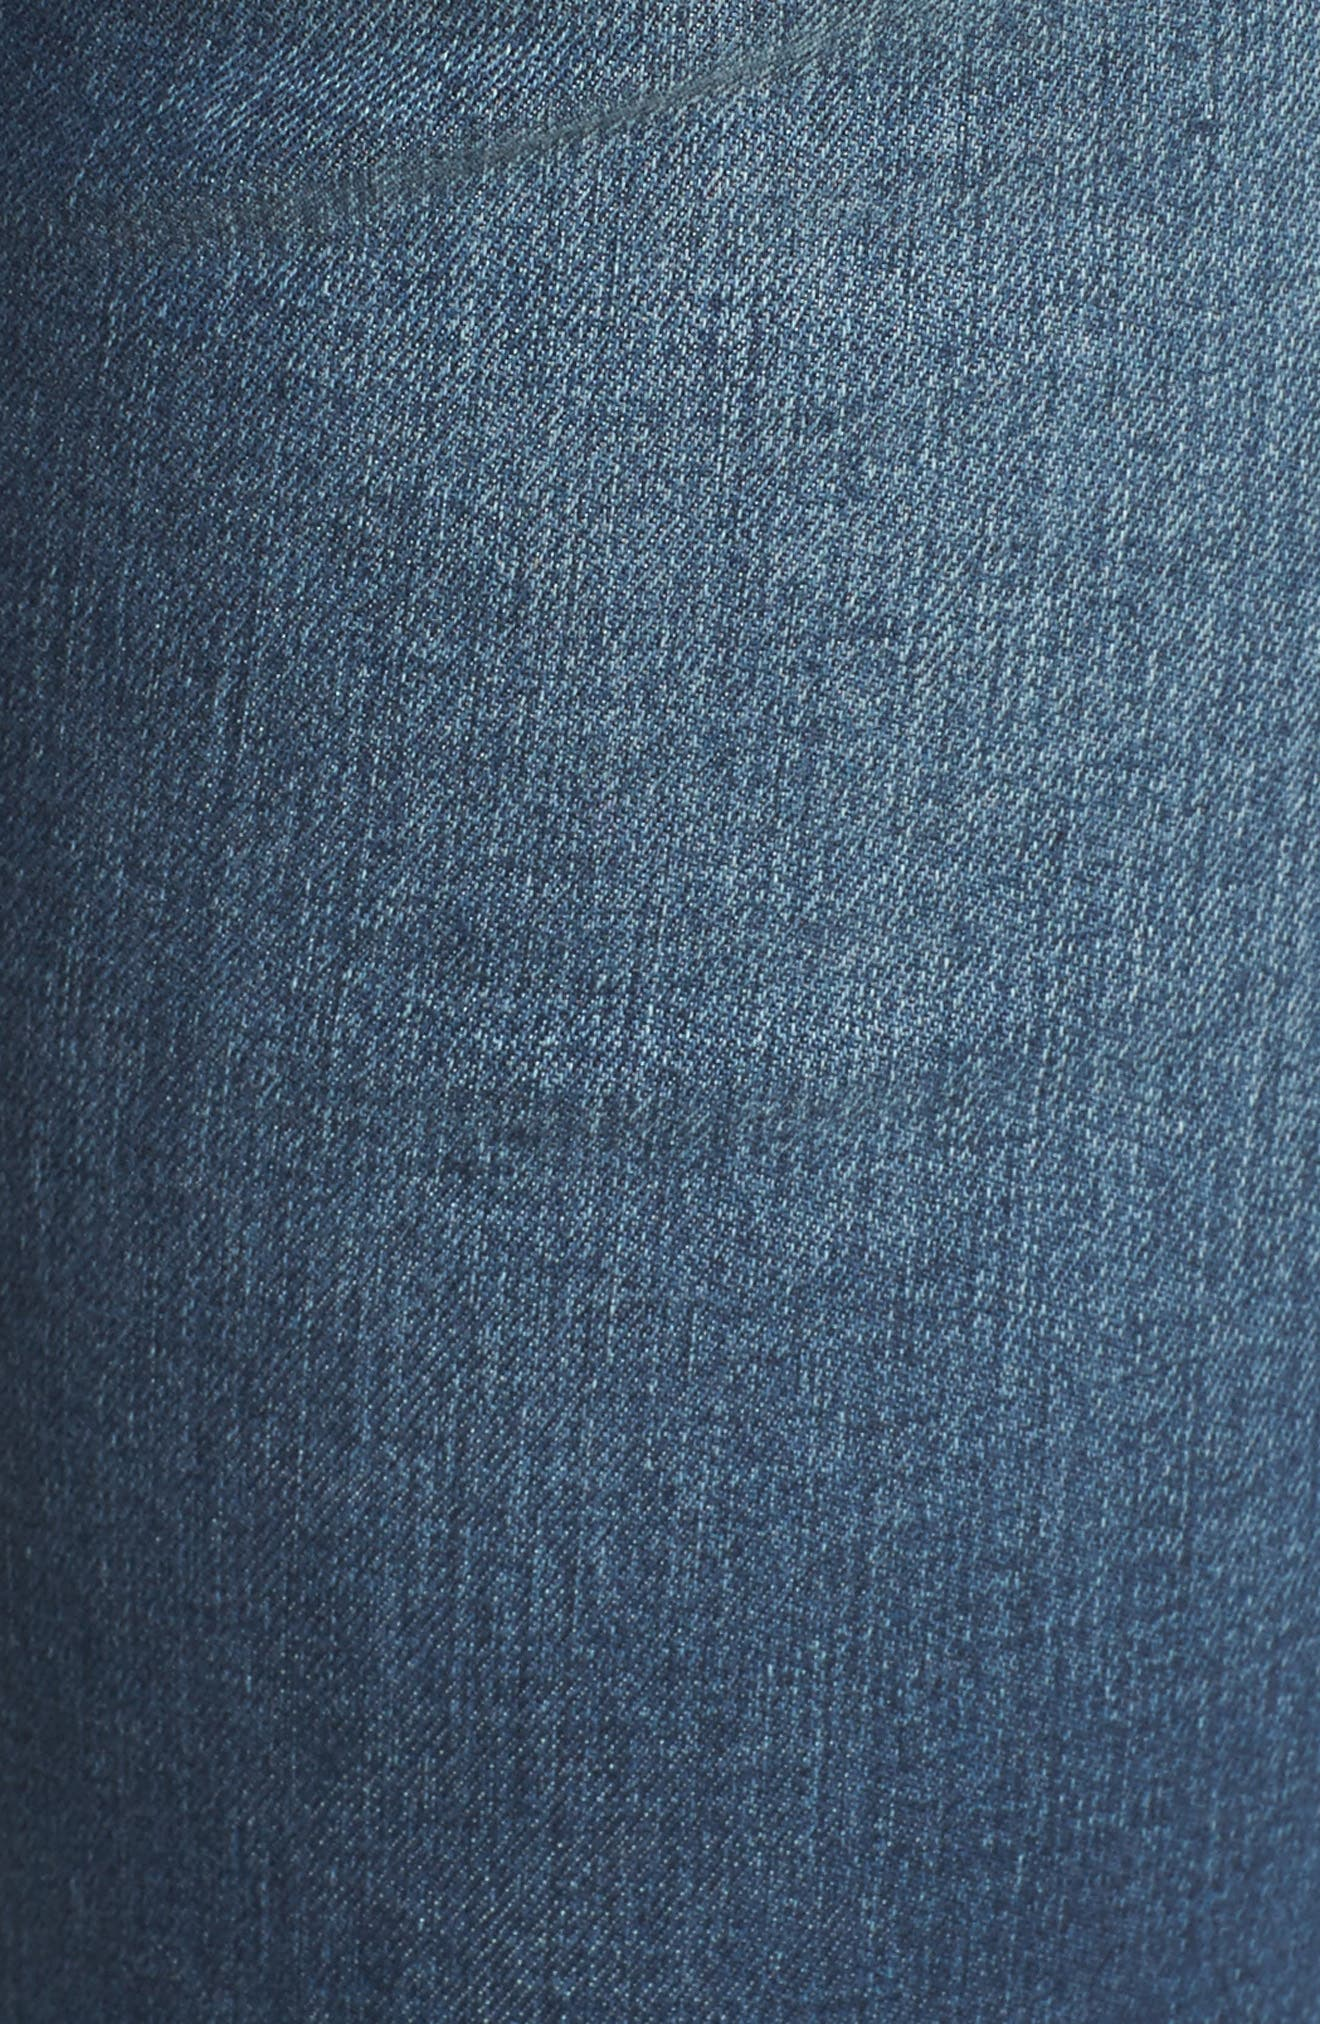 Sarah Skinny Jeans,                             Alternate thumbnail 6, color,                             PRARIE